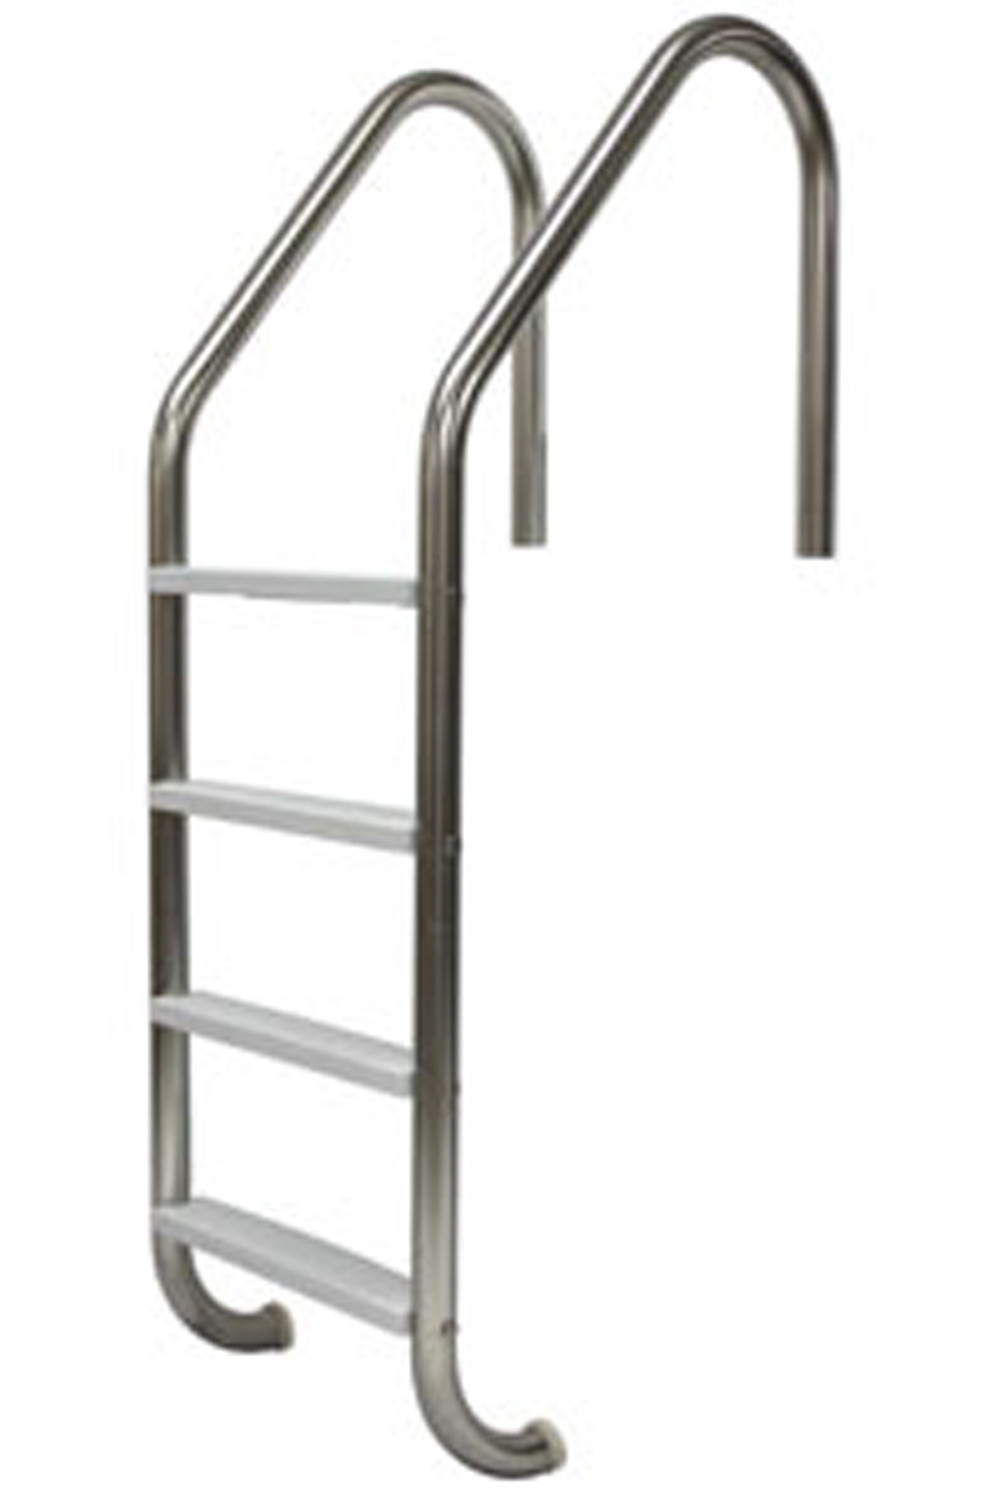 Best ideas about Inground Pool Ladder . Save or Pin SR Smith 4 Step Polished Stainless Steel Swimming Pool Now.